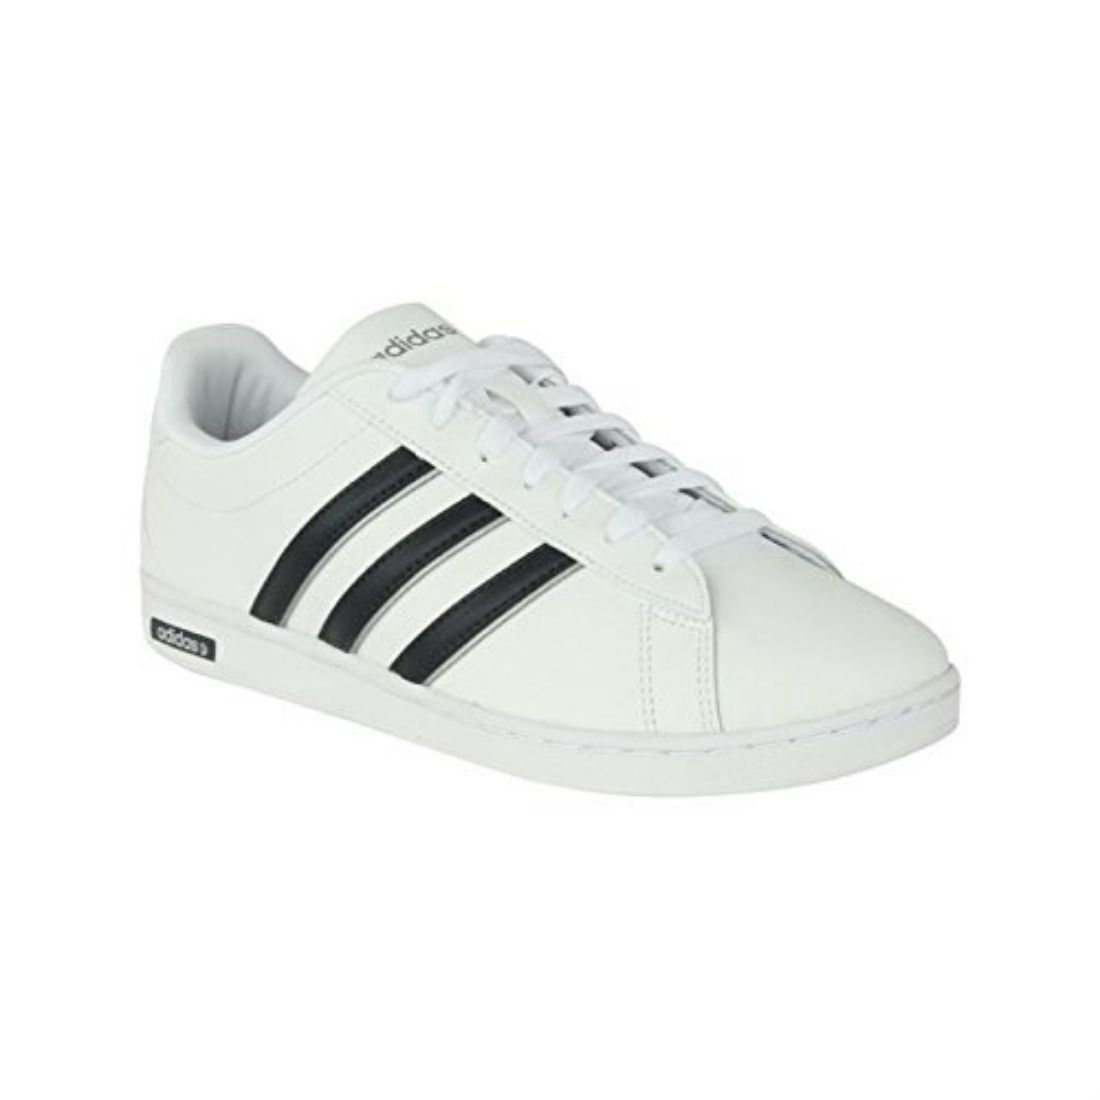 adidas neo shoes white selfcavies co uk